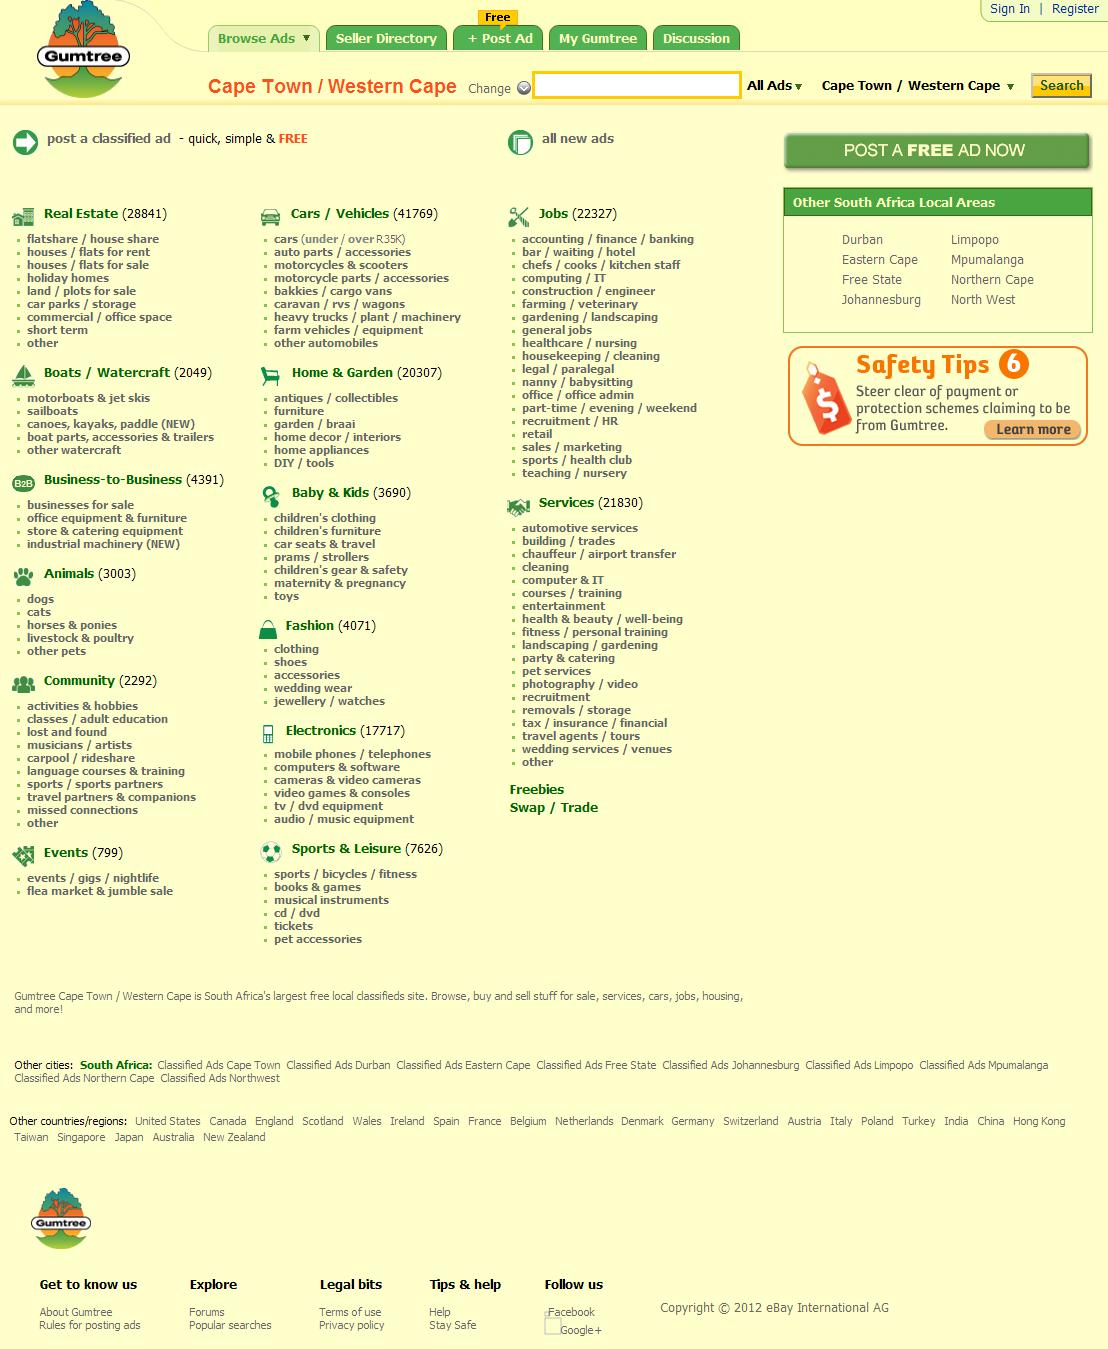 Gumtree Cape Town / Western Cape - South Africa's Largest Free Local Classified Ads Marketplace